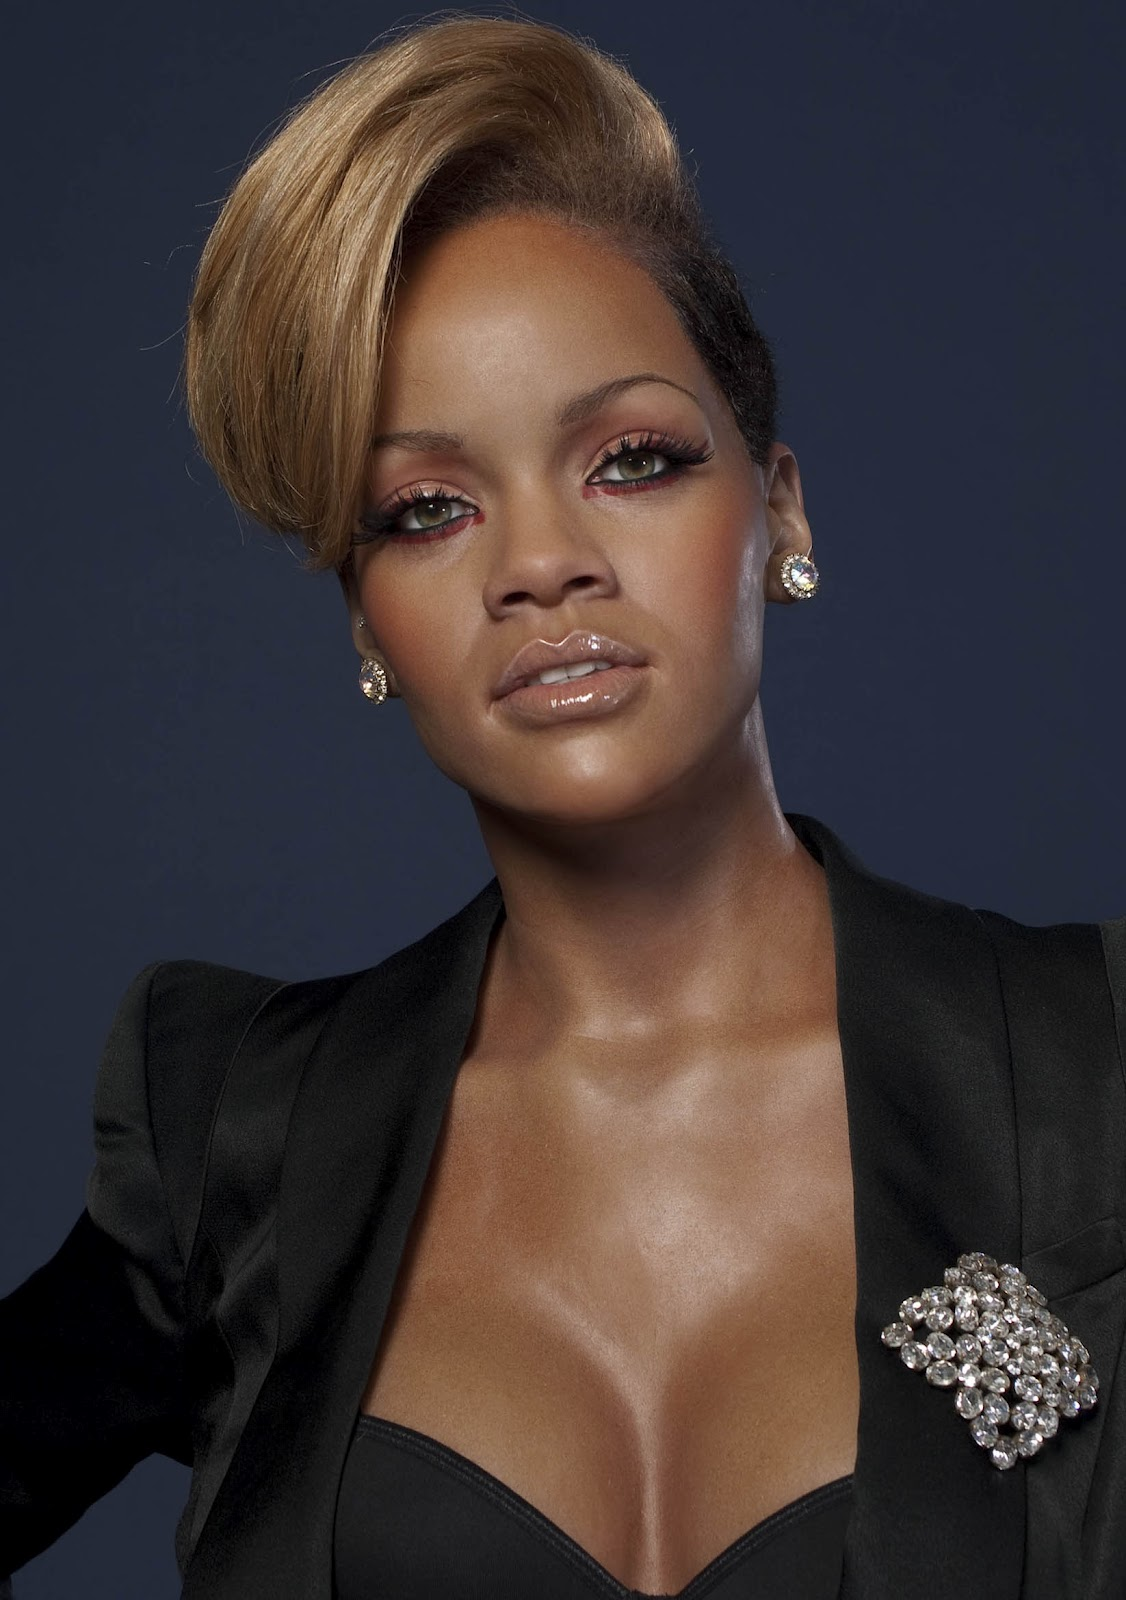 Rihanna Hairstyle Trends